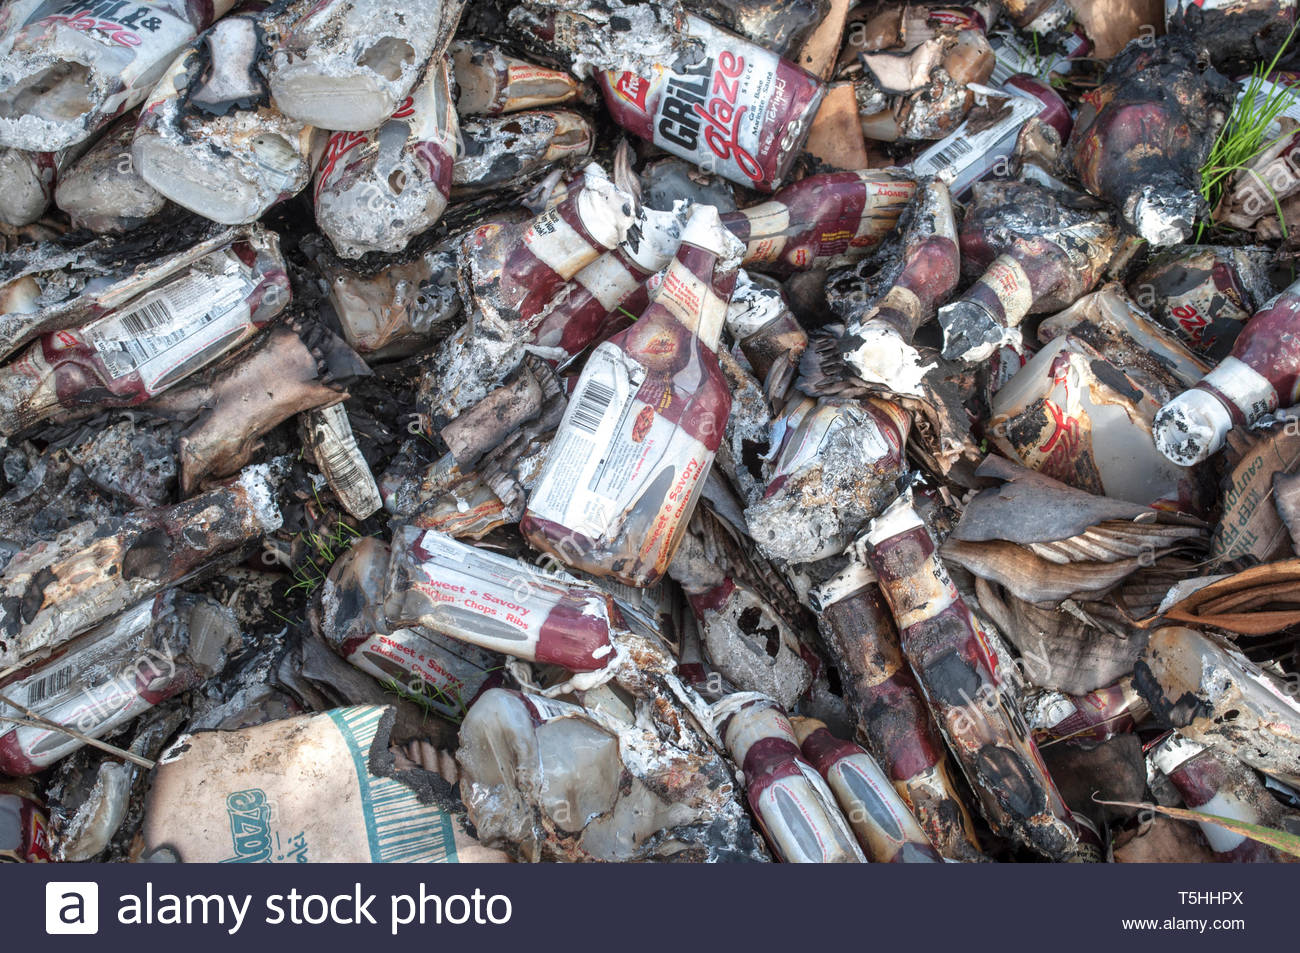 Partially incinerated bottles of barbecue sauce abandoned on waste ground, Willenhall; West Midlands. - Stock Image